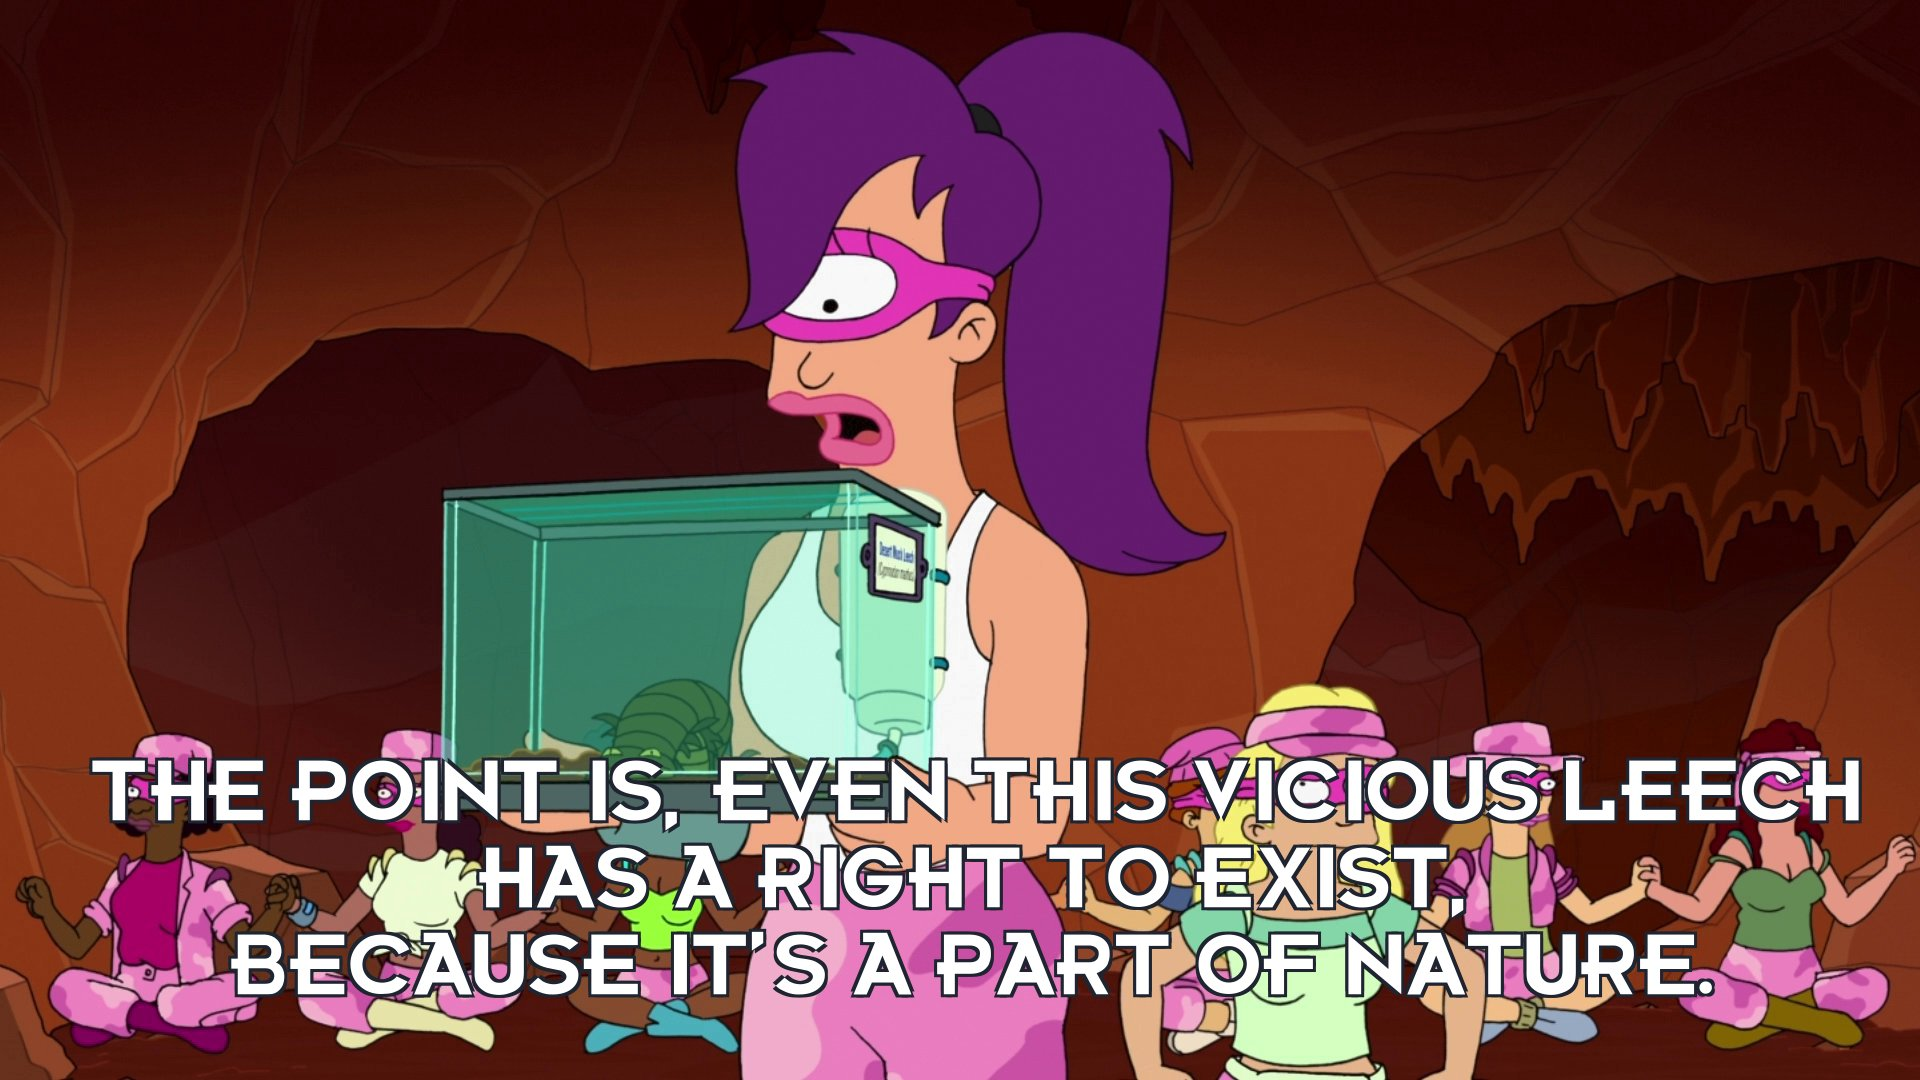 Turanga Leela: The point is, even this vicious leech has a right to exist, because it's a part of nature.